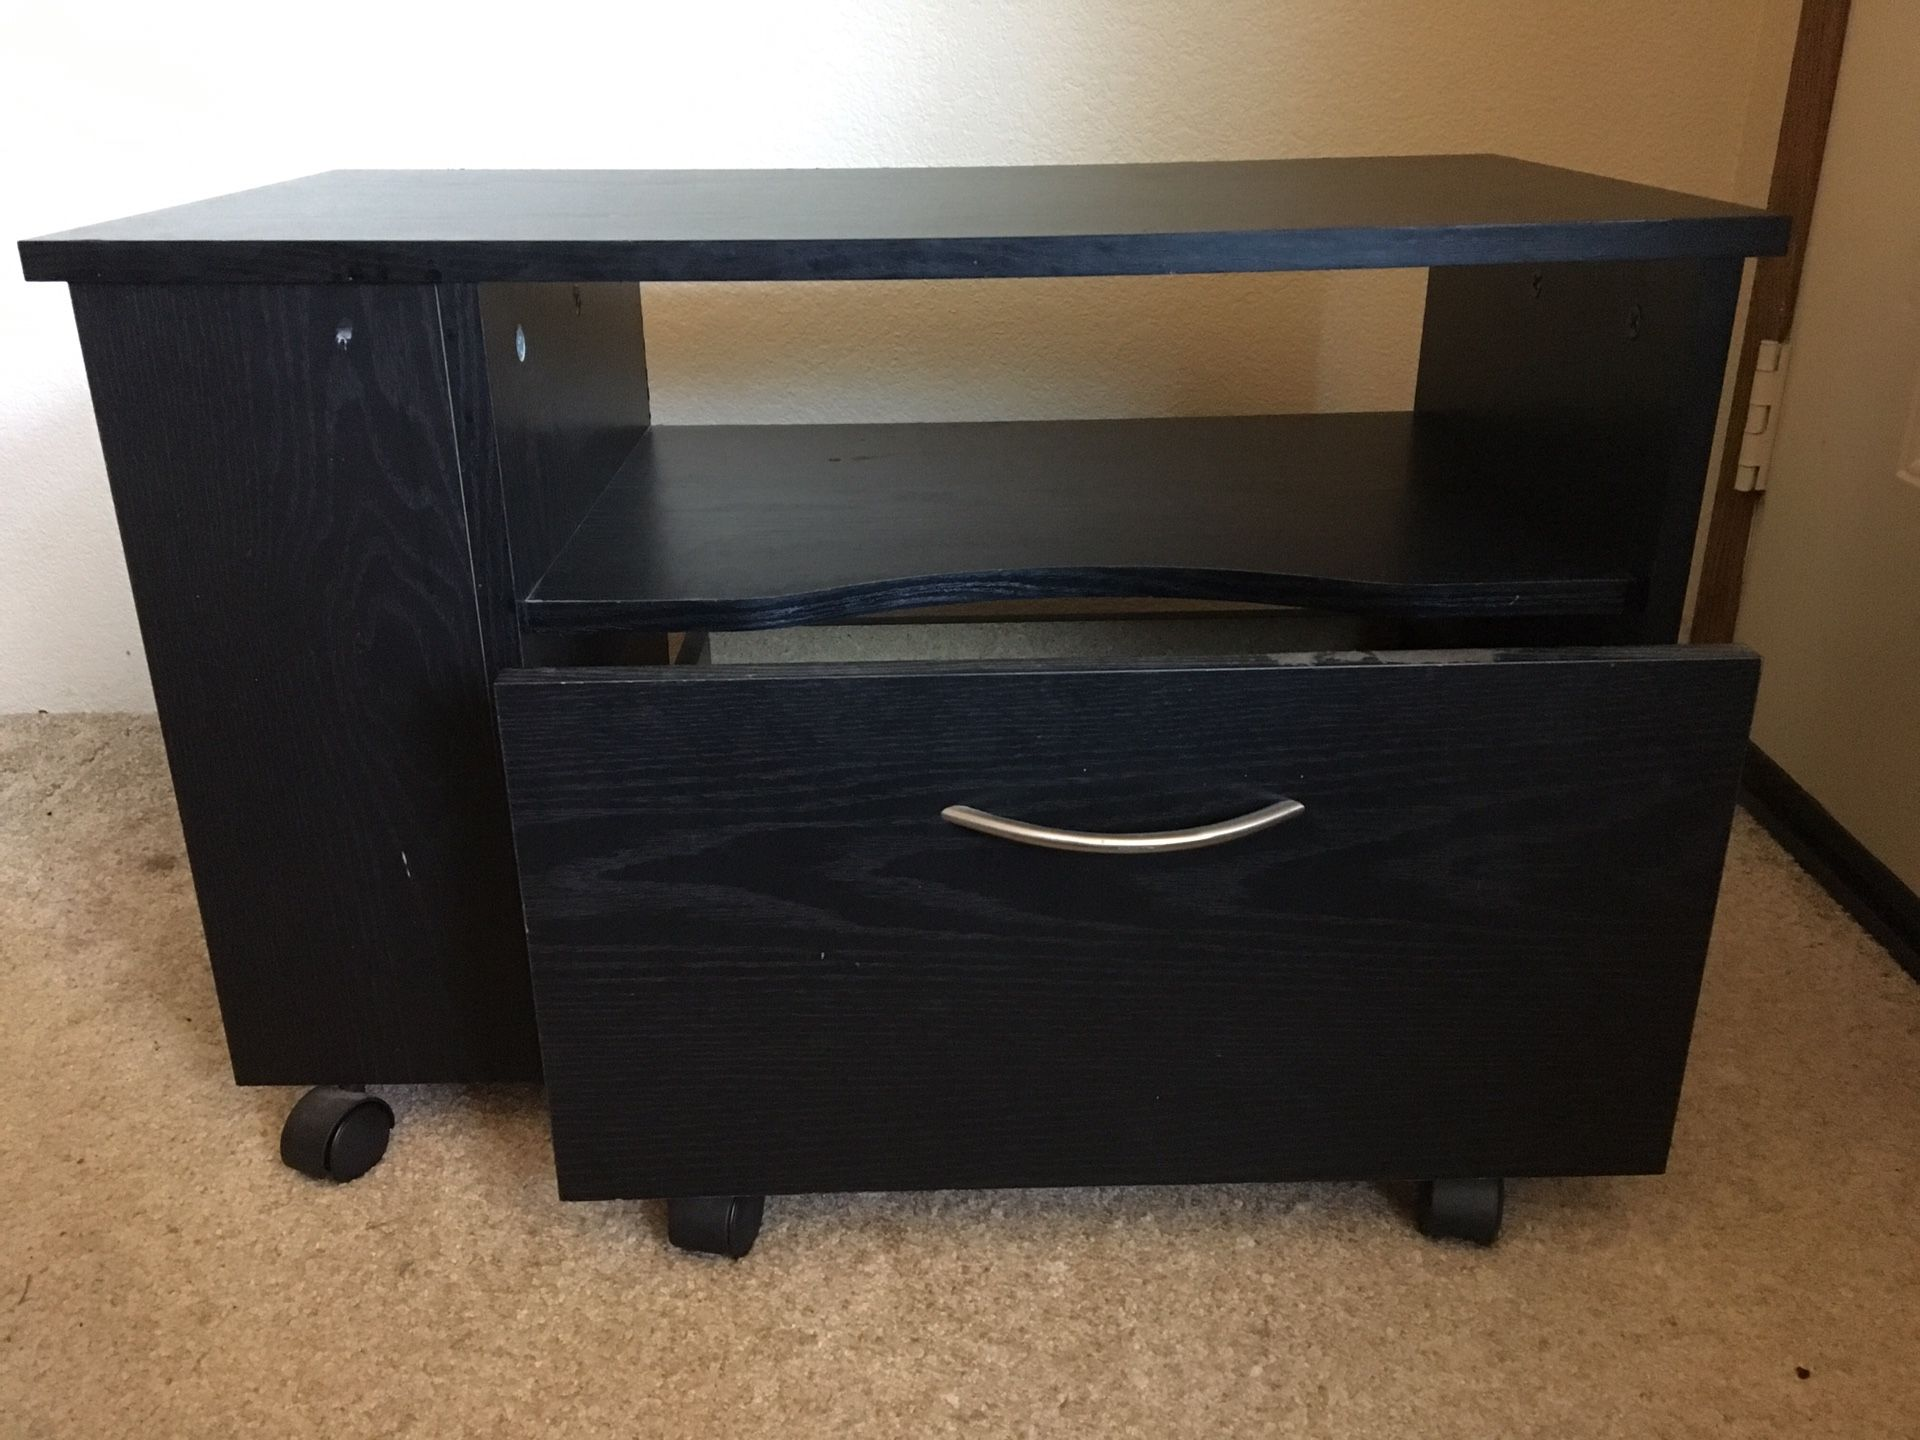 Small black stand with drawer.